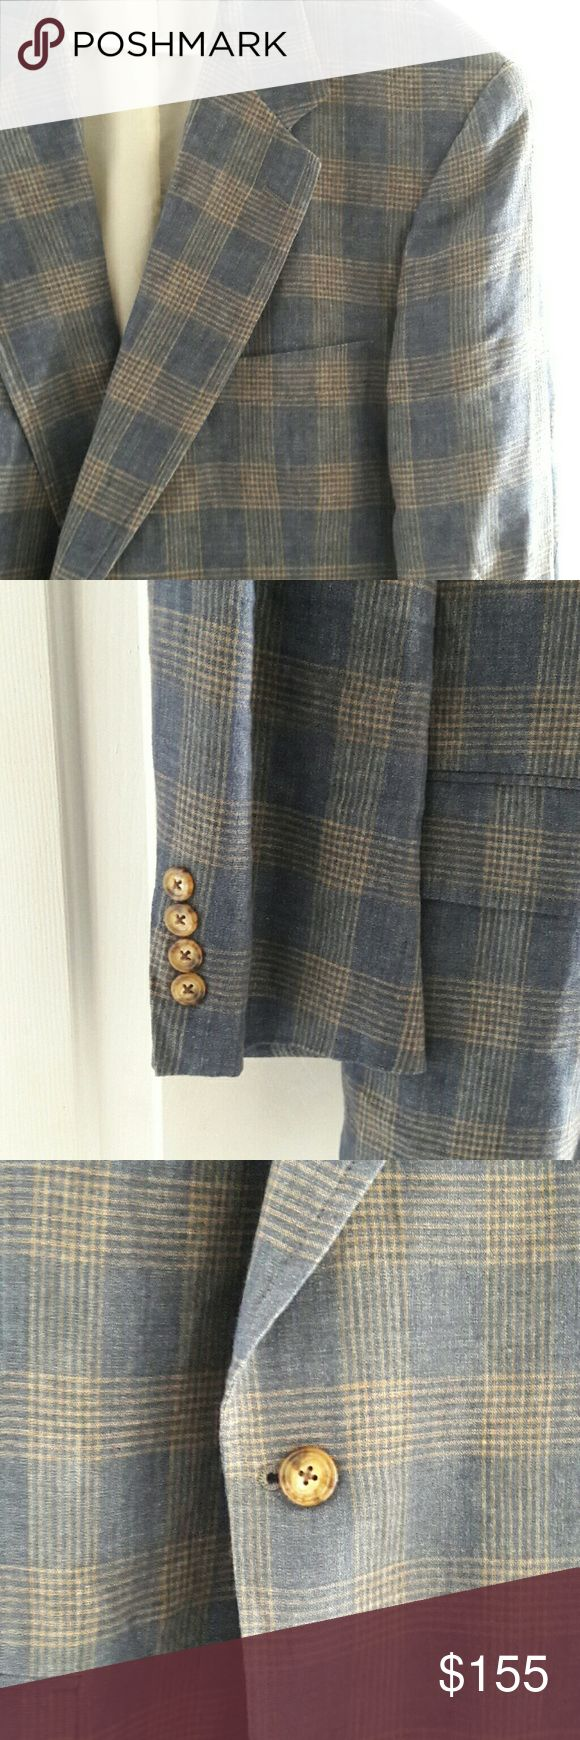 Southwick Linen Blazer This awesome Southwick blazer is blue linen with khaki plaid accents. In great, gently-used condition. Southwick Suits & Blazers Sport Coats & Blazers